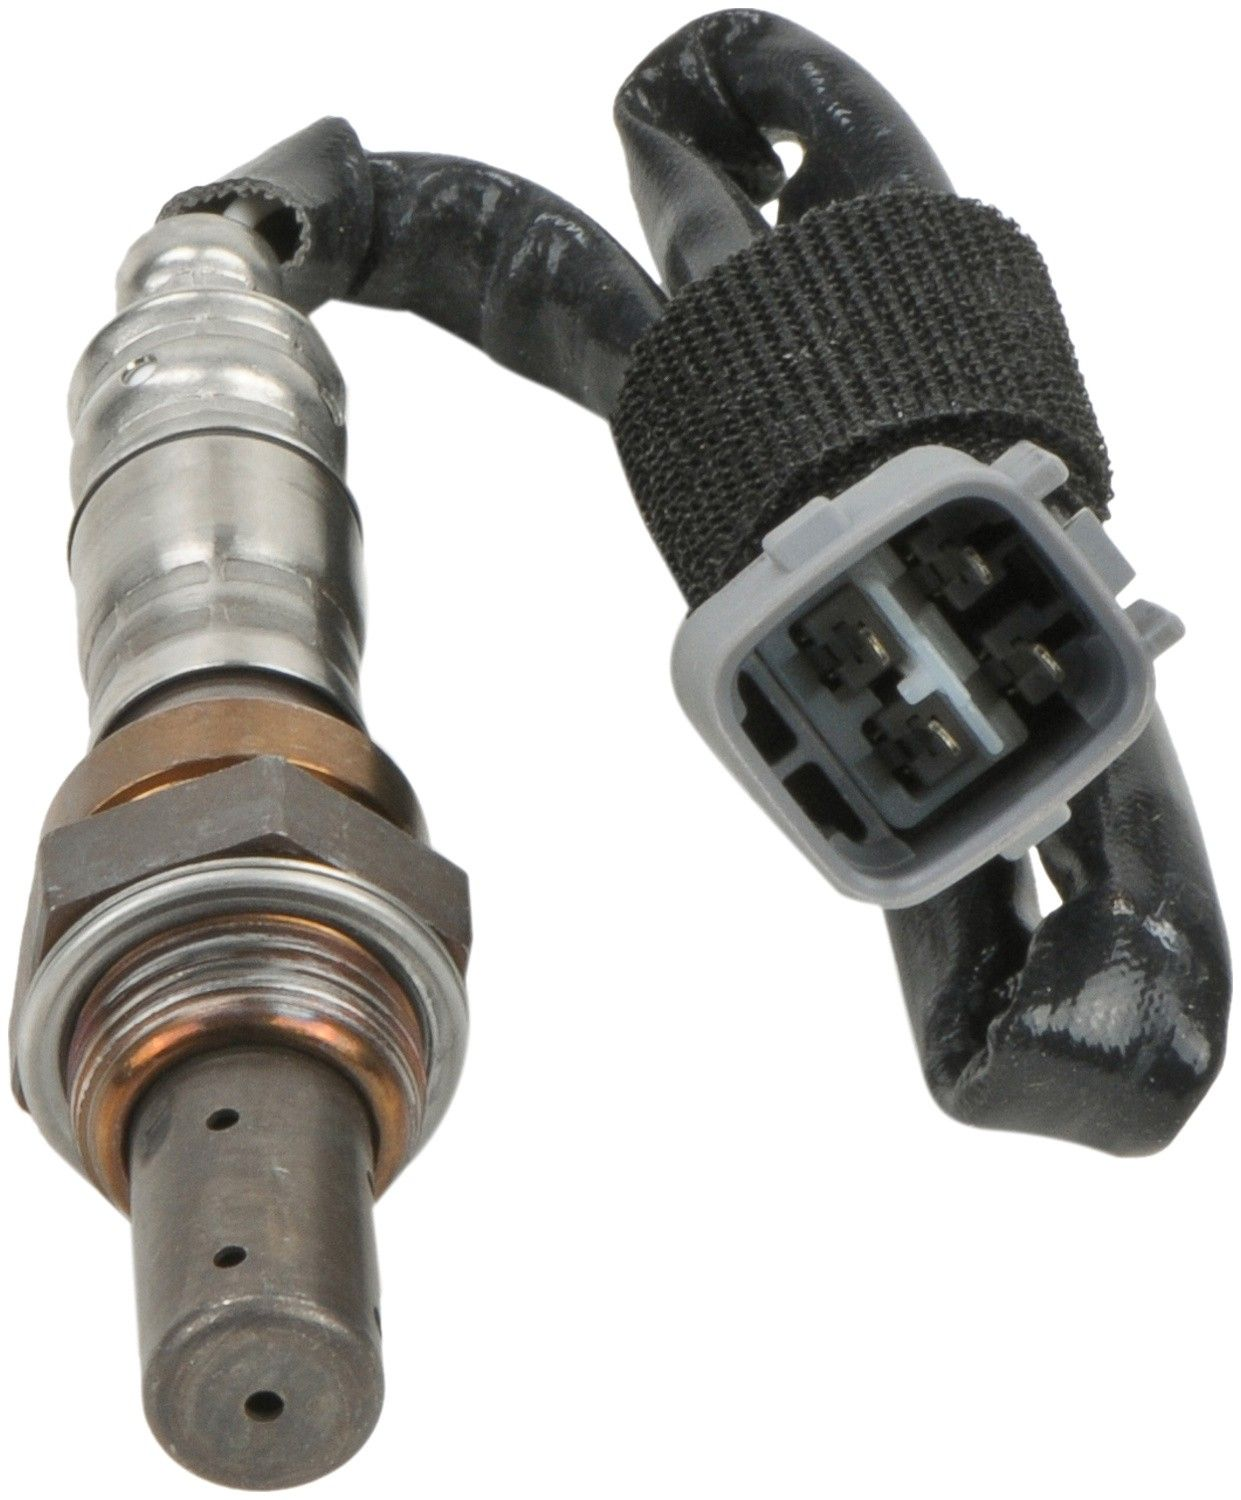 Toyota Sienna Oxygen Sensor Replacement Bosch Delphi Denso Ngk 2001 Echo Location Upstream Front 6 Cyl 30l 13540 Oe Technology